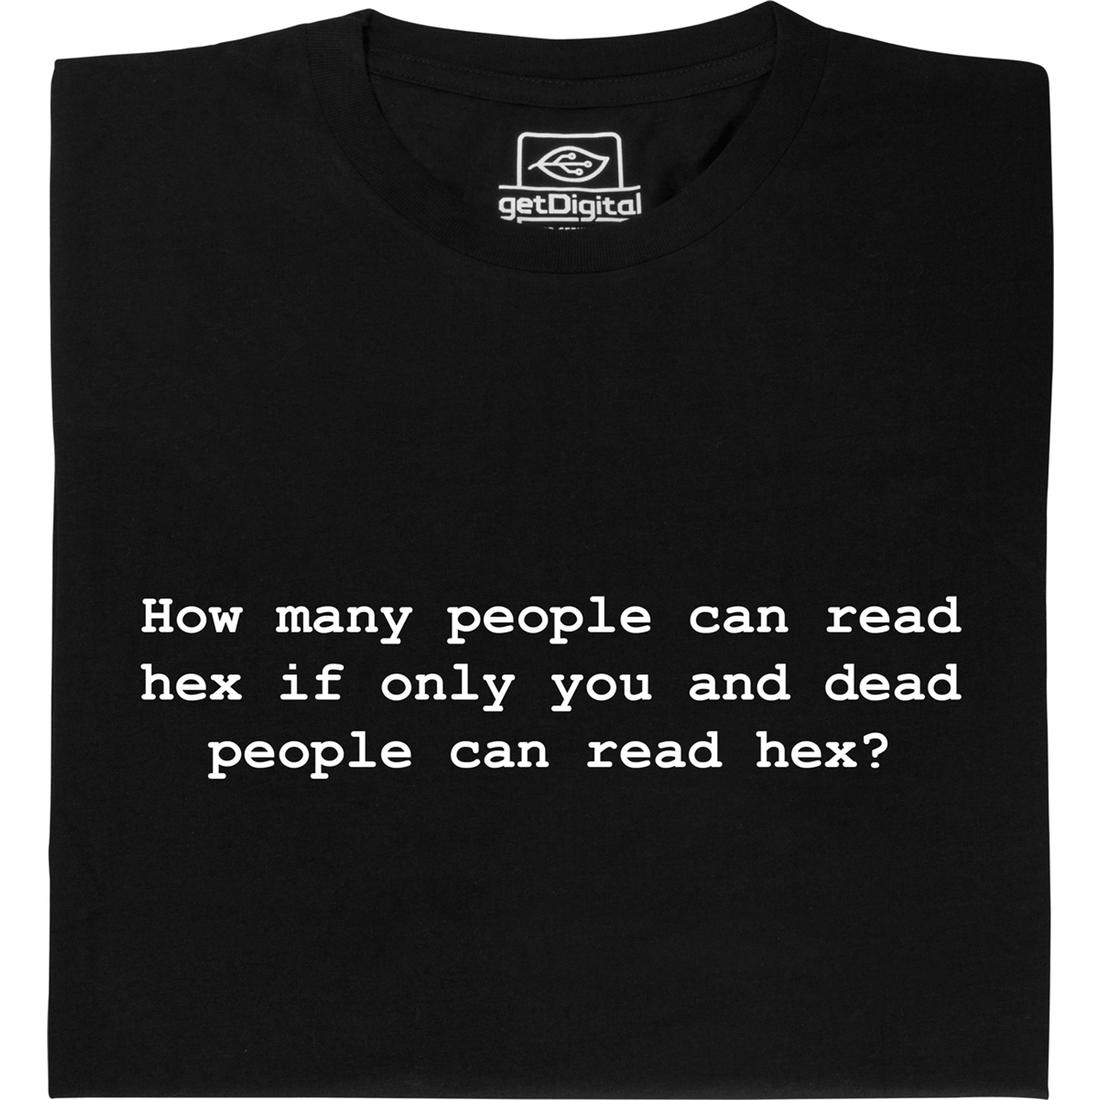 How many people can read hex | getDigital